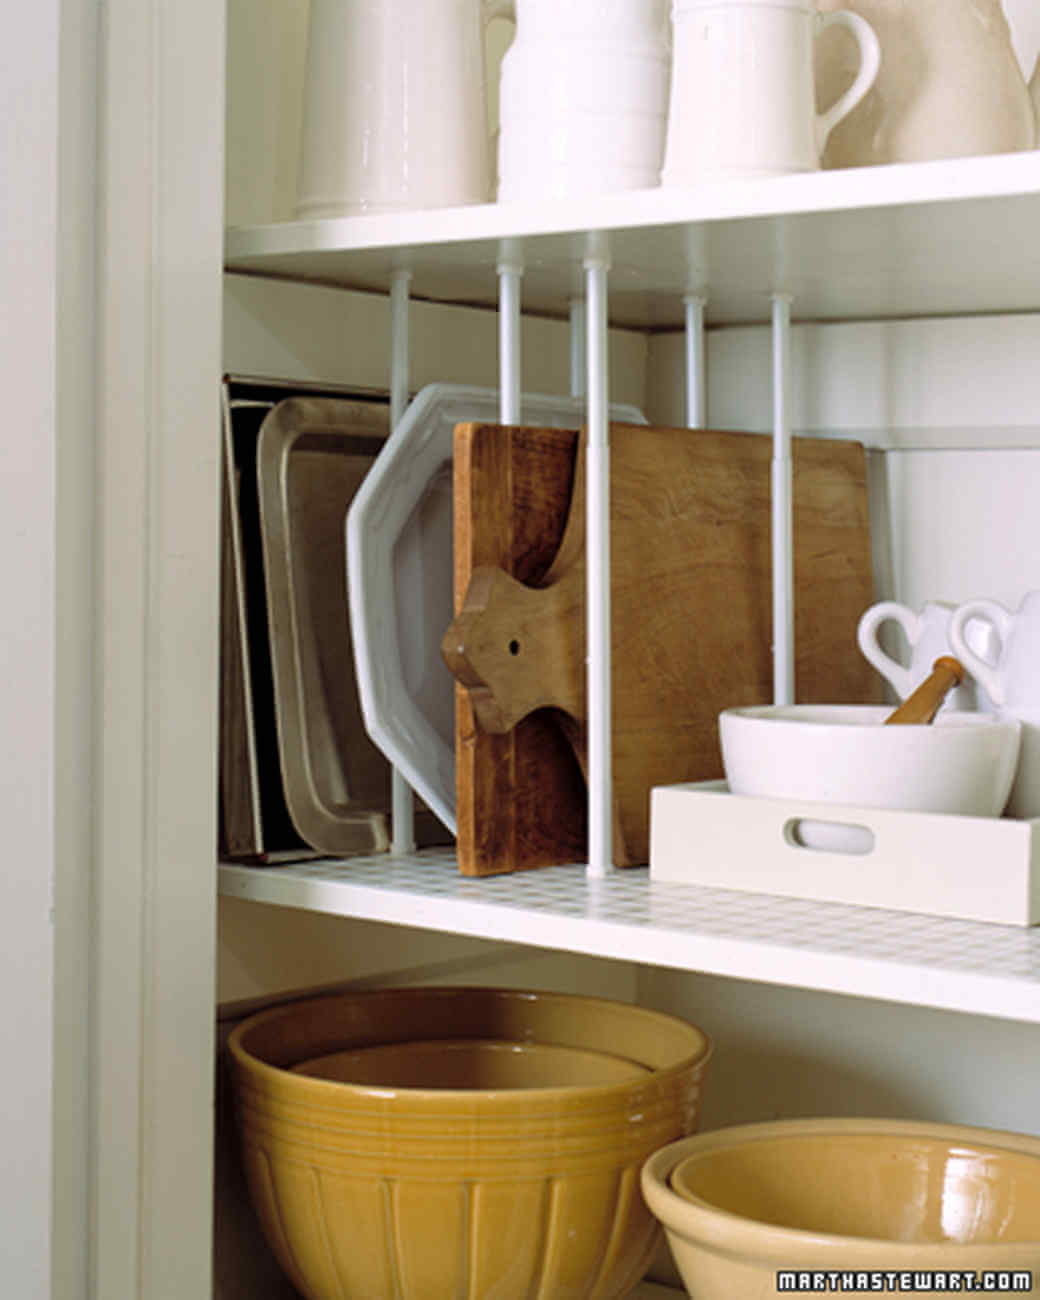 Plate Racks for Cutting Boards